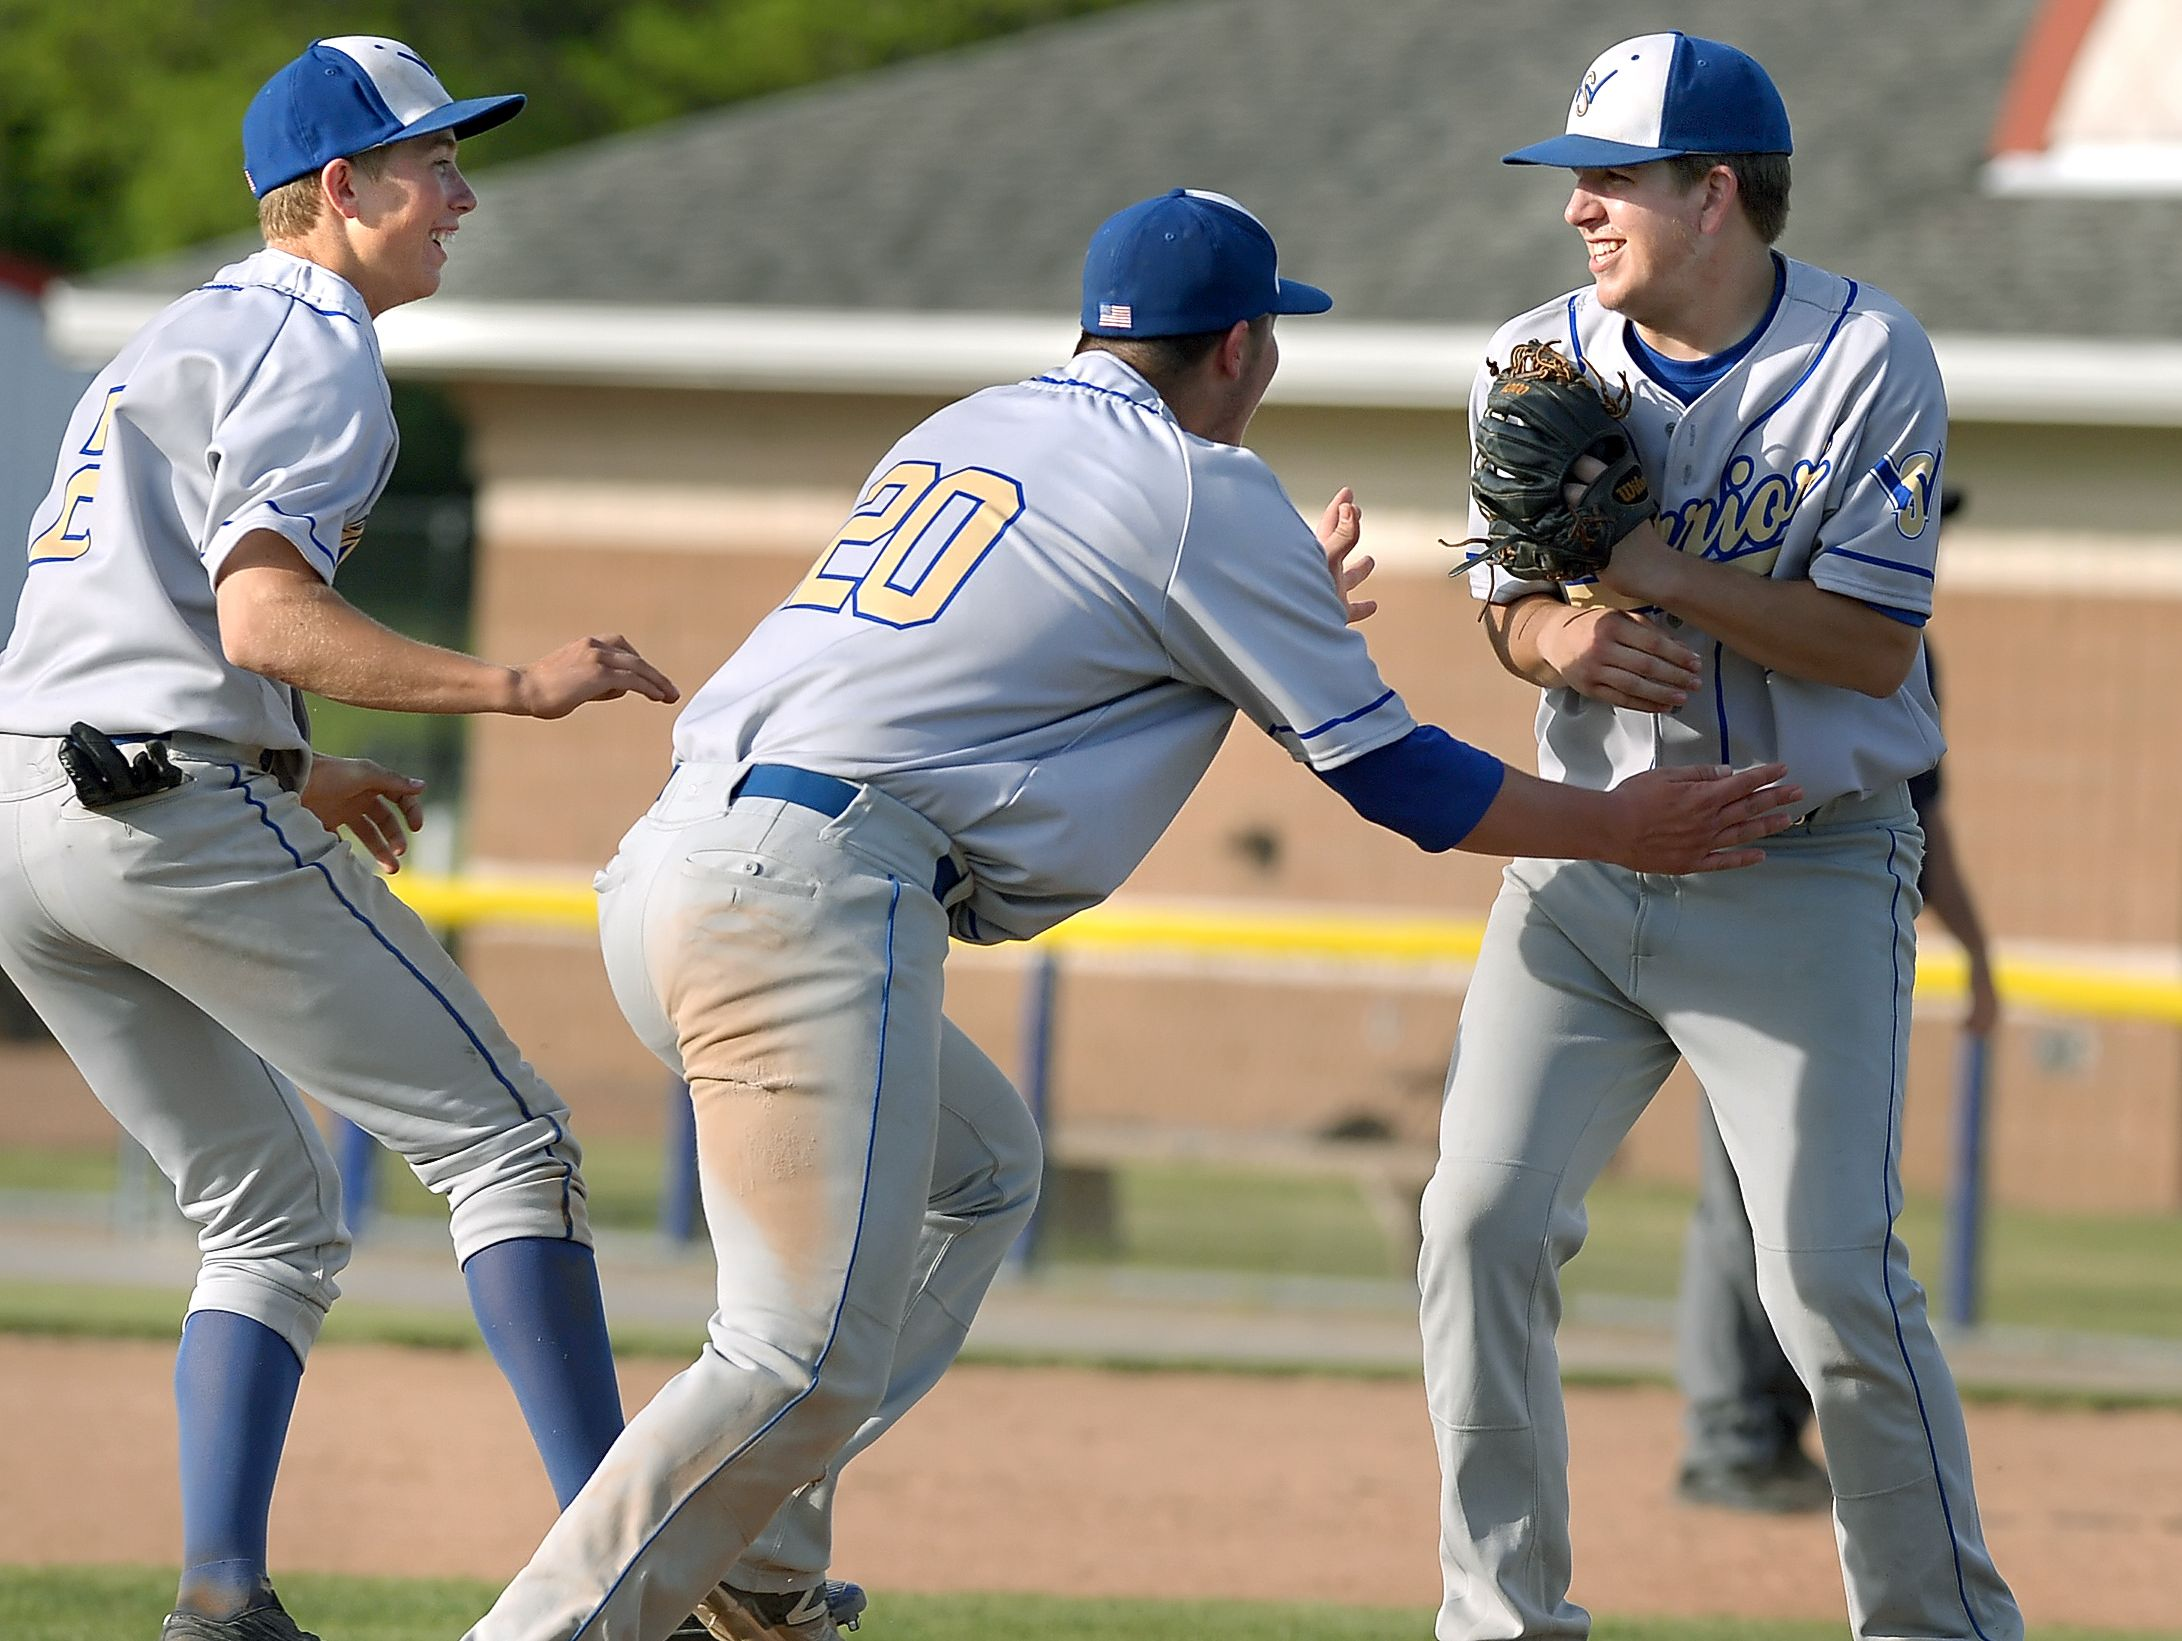 Webster Schroeder's Justin Graham, left, and Phil Ferranti charge pitcher Nick Lawlor after the final out during the Section 5 Class AA Sectional Championship played at Dwyer Stadium in Batavia on May 27, 2016. Webster Schroeder claimed the Class AA title with a 14-0 win over East High.